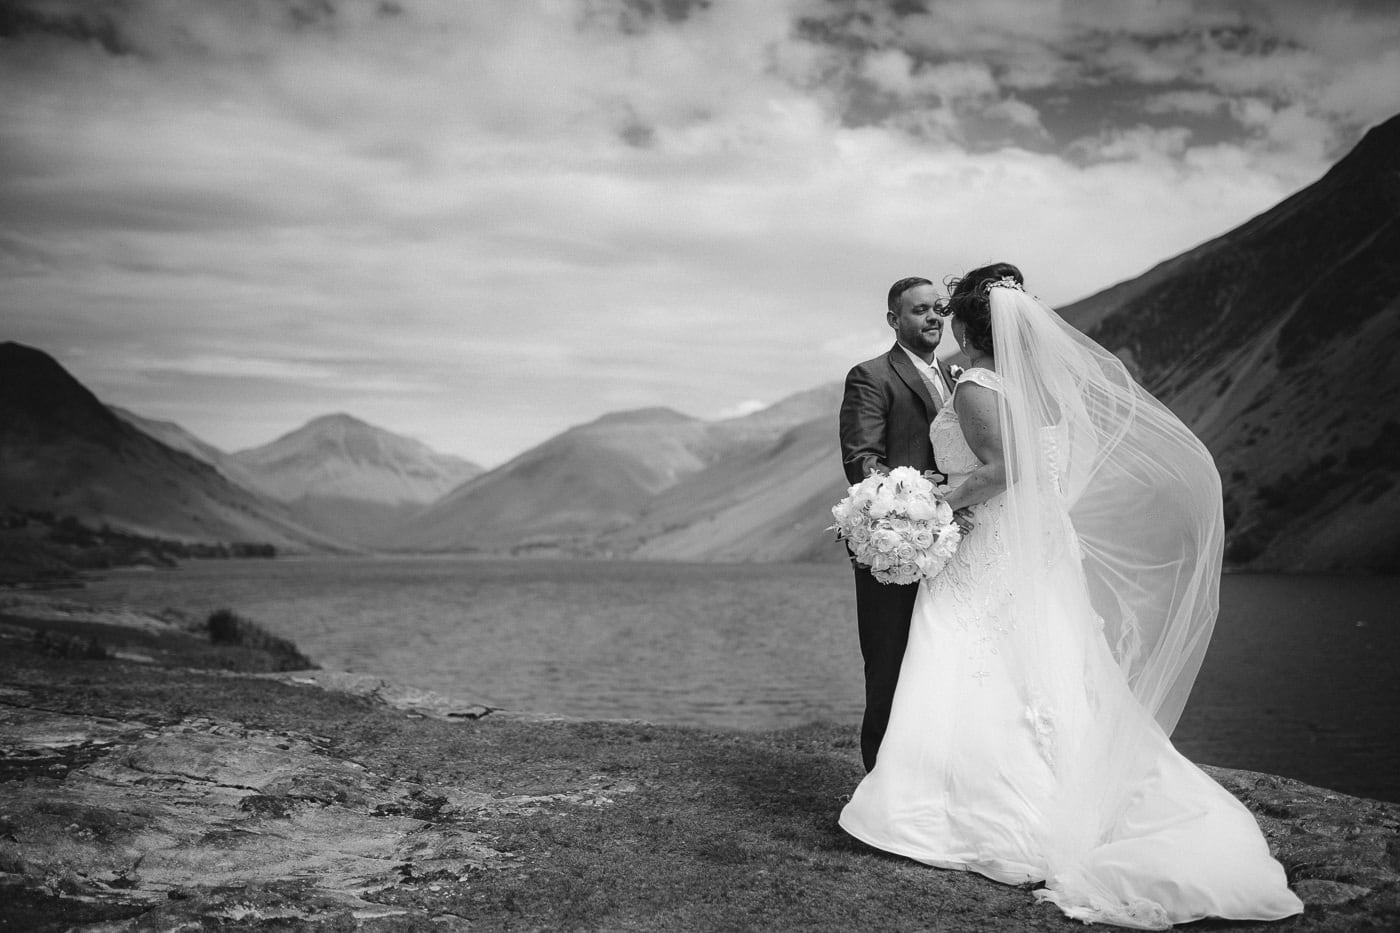 Bride and Groom at wastwater in a wedding portrait